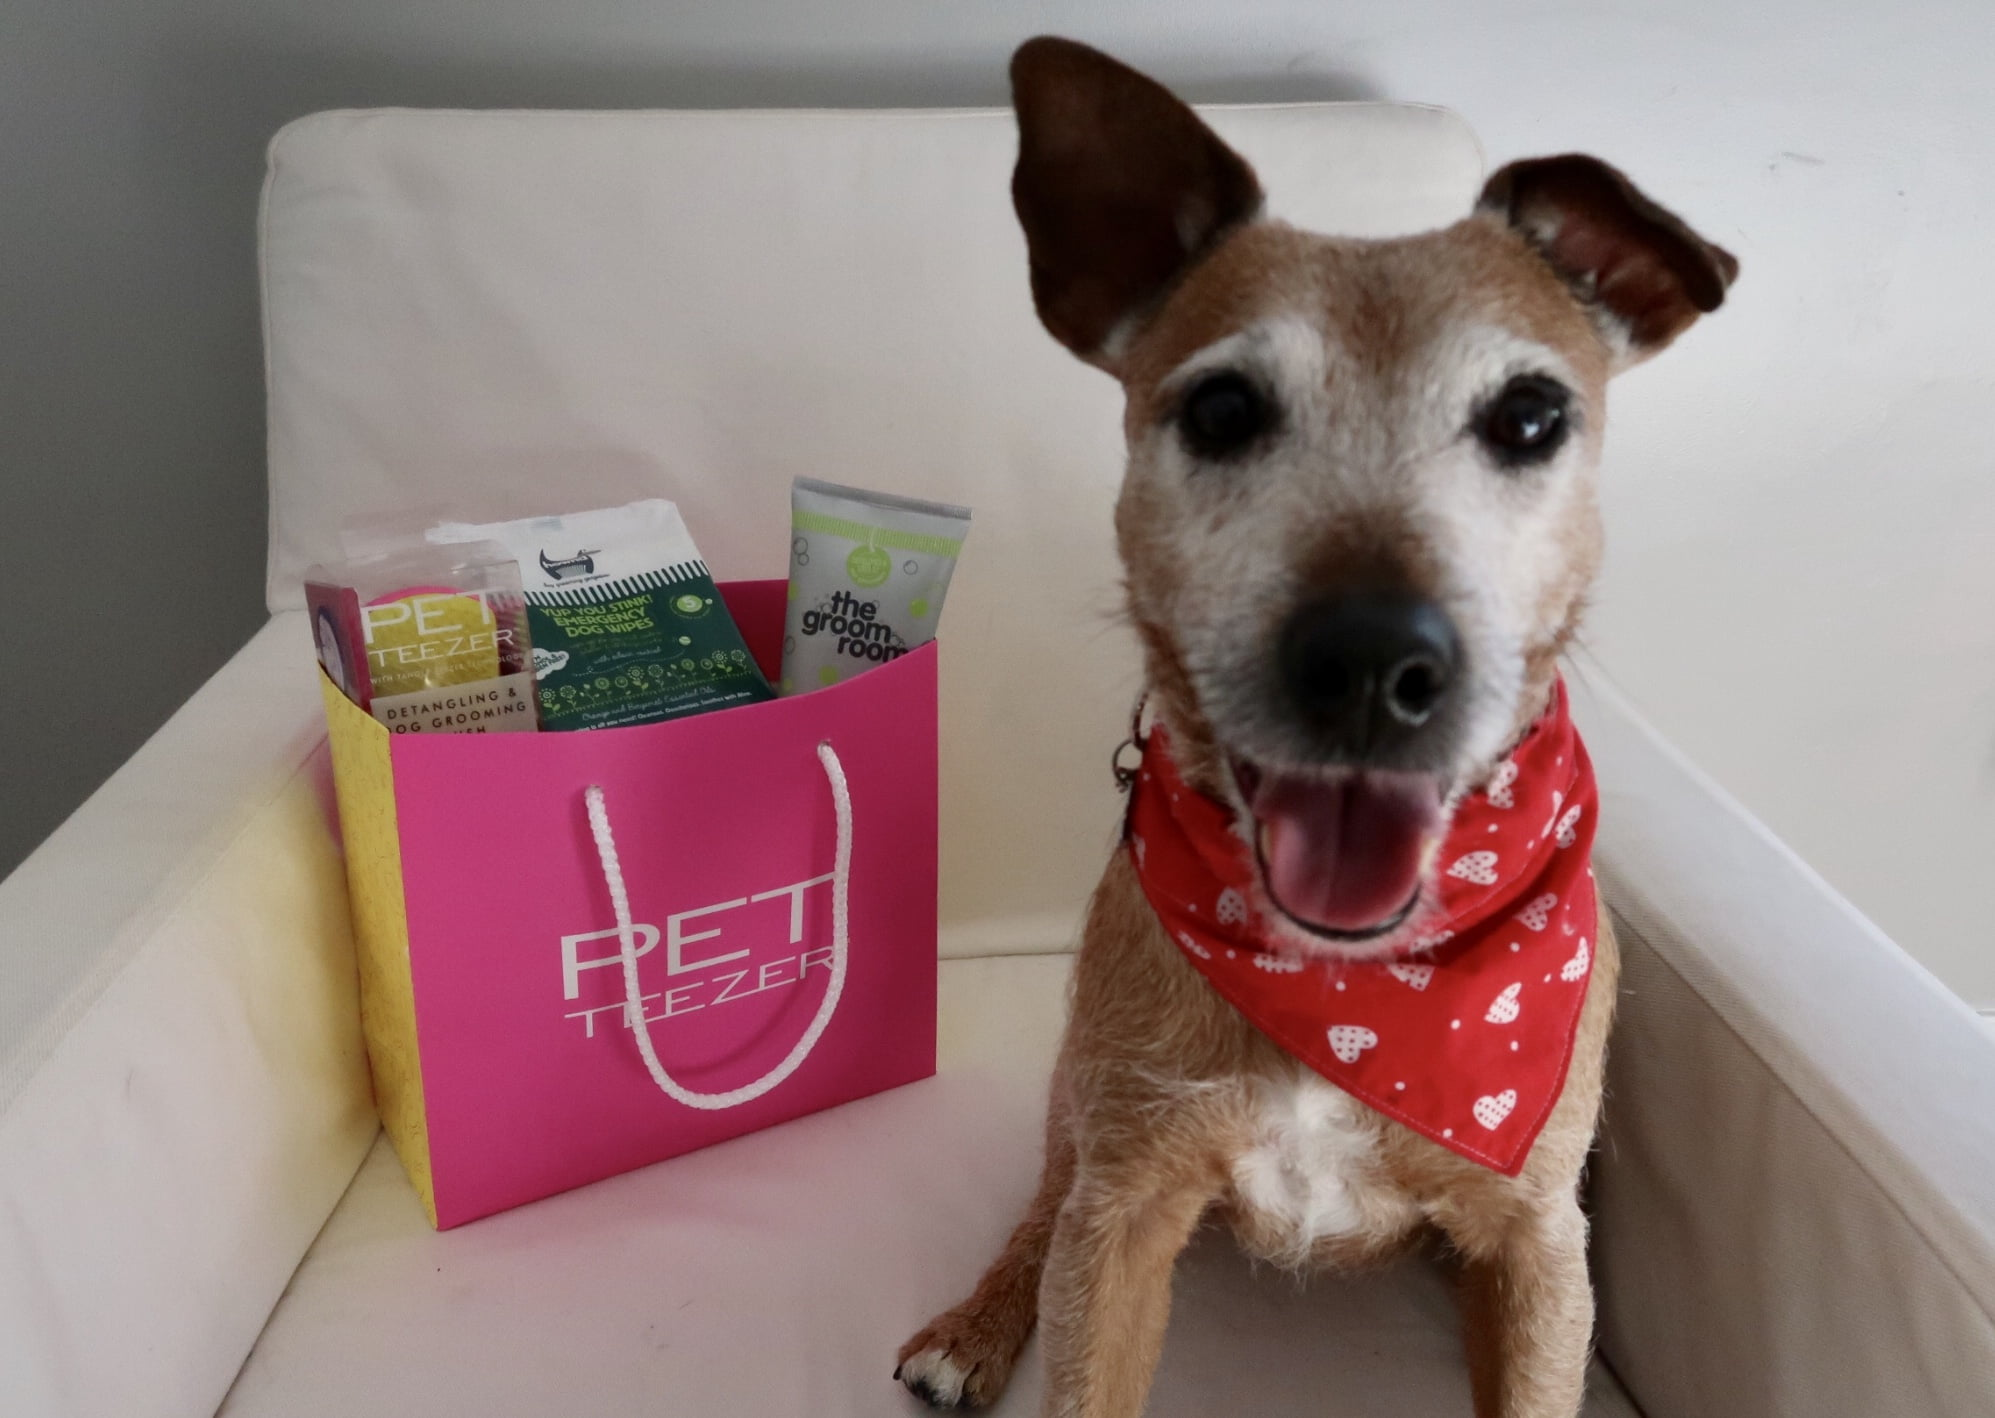 Shaun Pulfrey, creator of the Tangle Teezer has created a Pet Teezer for dogs!